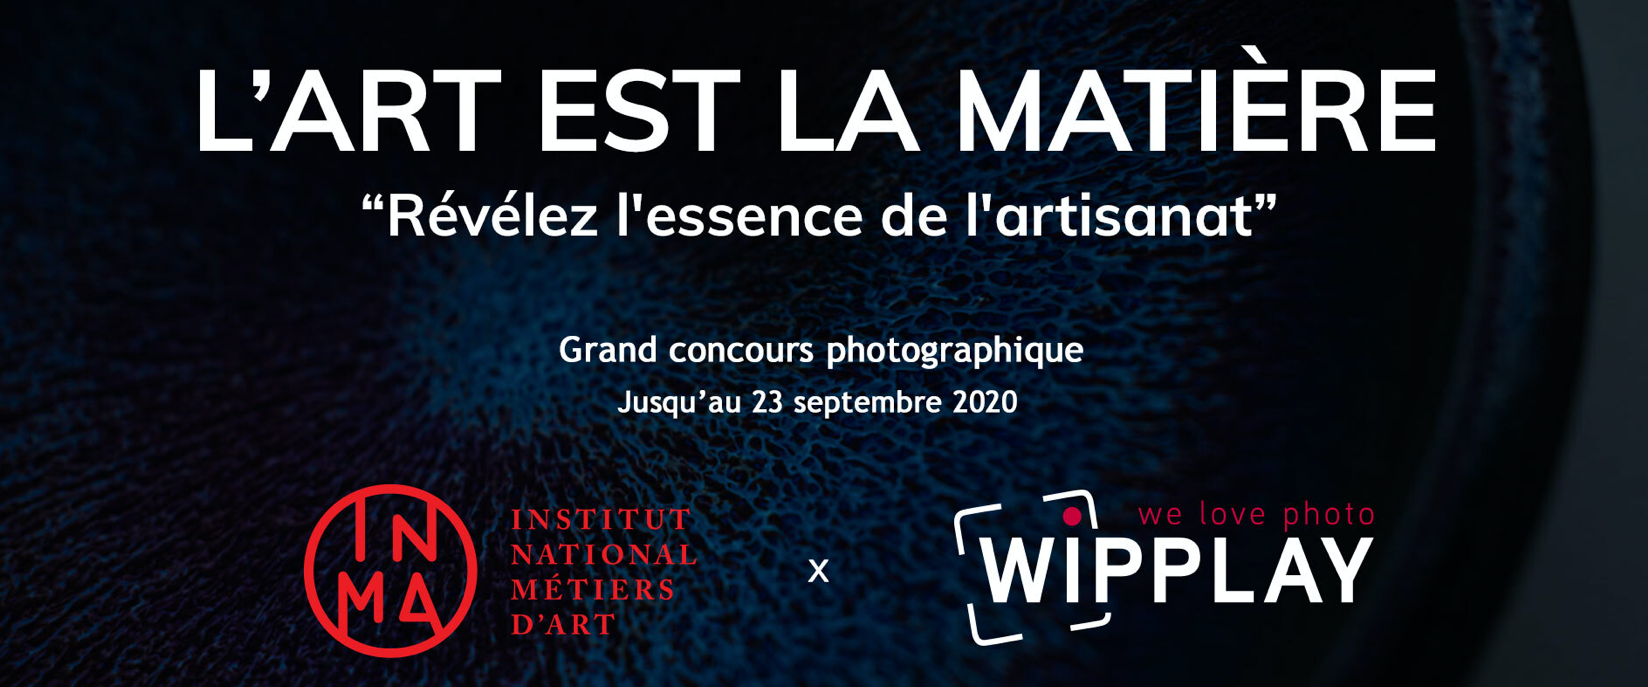 concours-inma